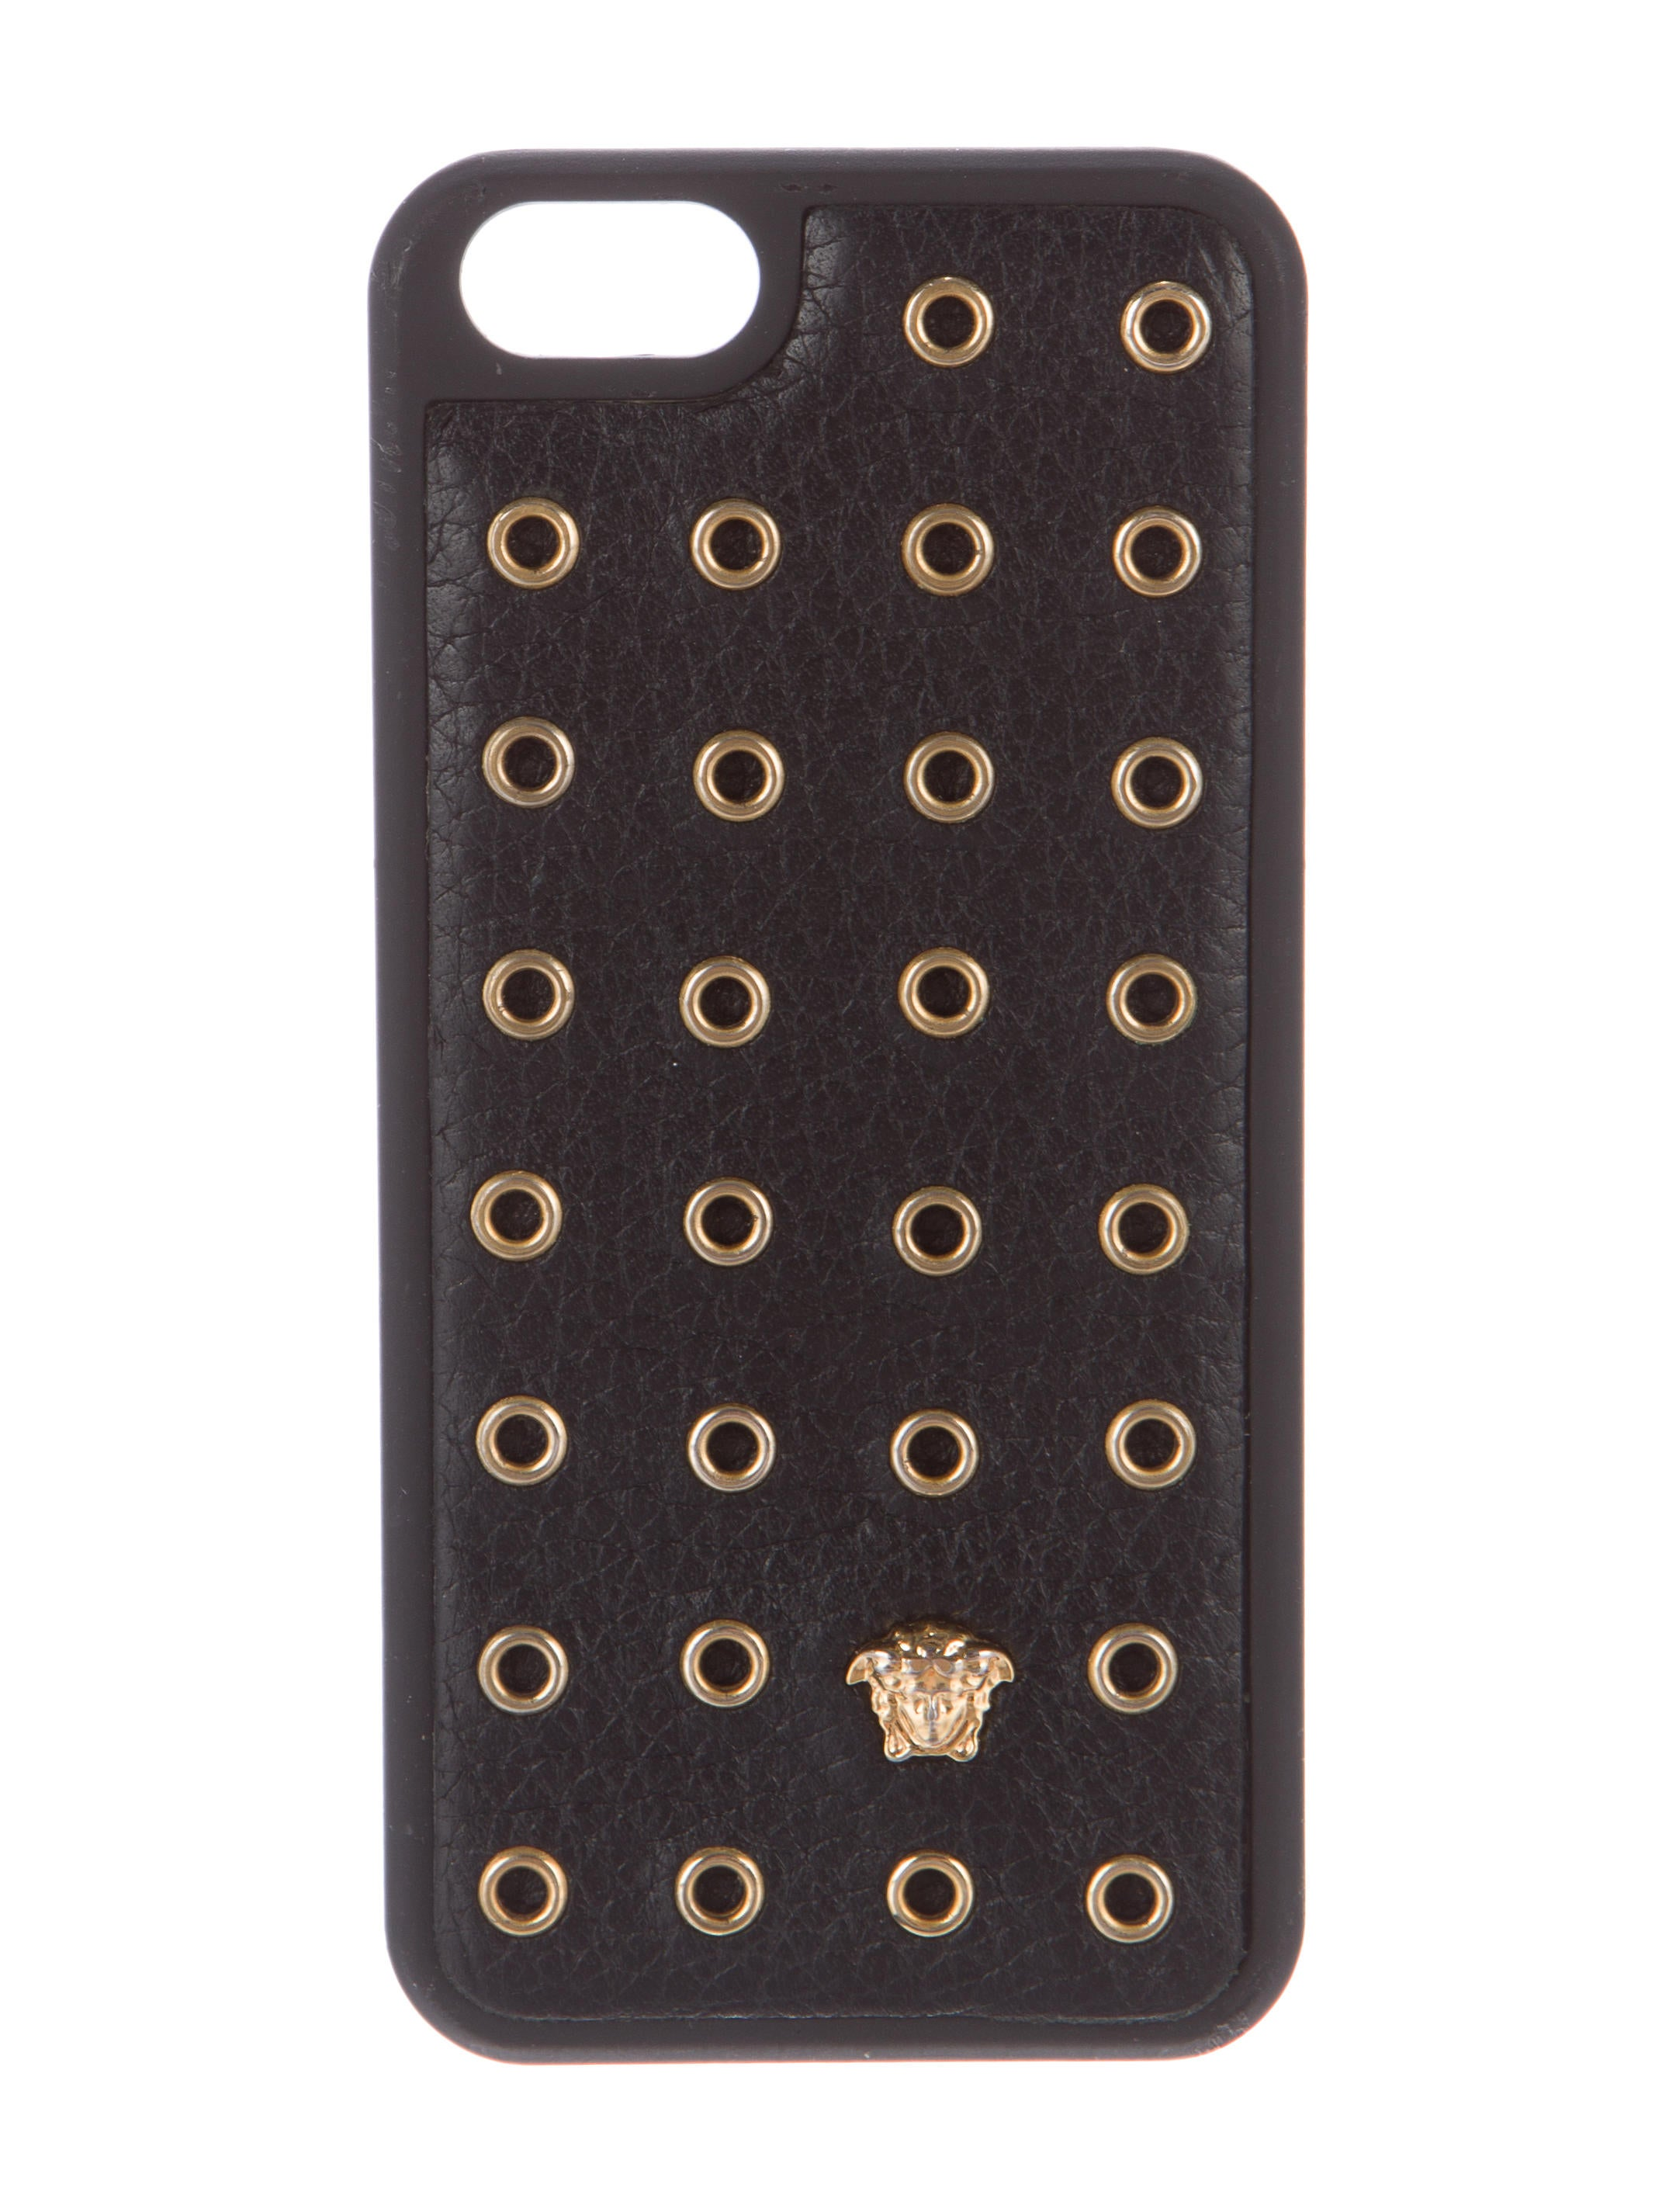 the latest e8129 69d00 iPhone 5 Leather Case